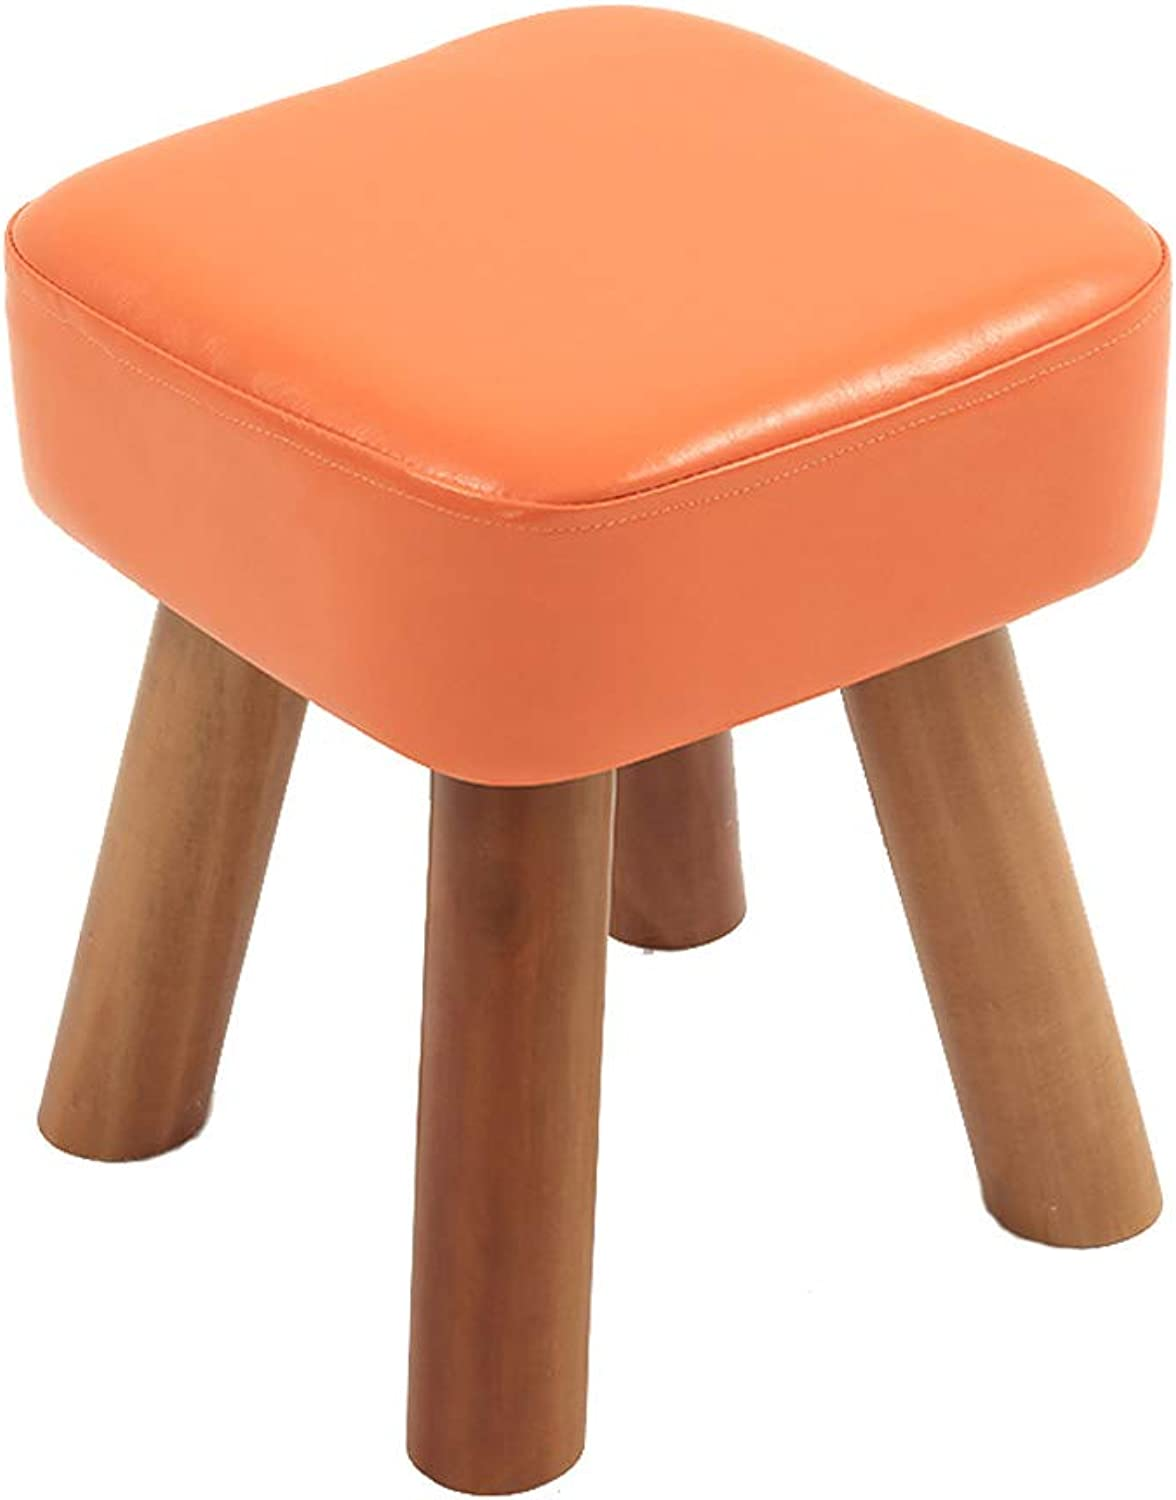 HLJ Simple Home Small Bench Coffee Table Stool Personality Living Room Sofa Bench Fashion Change shoes Stool (Size   28  28  32cm)